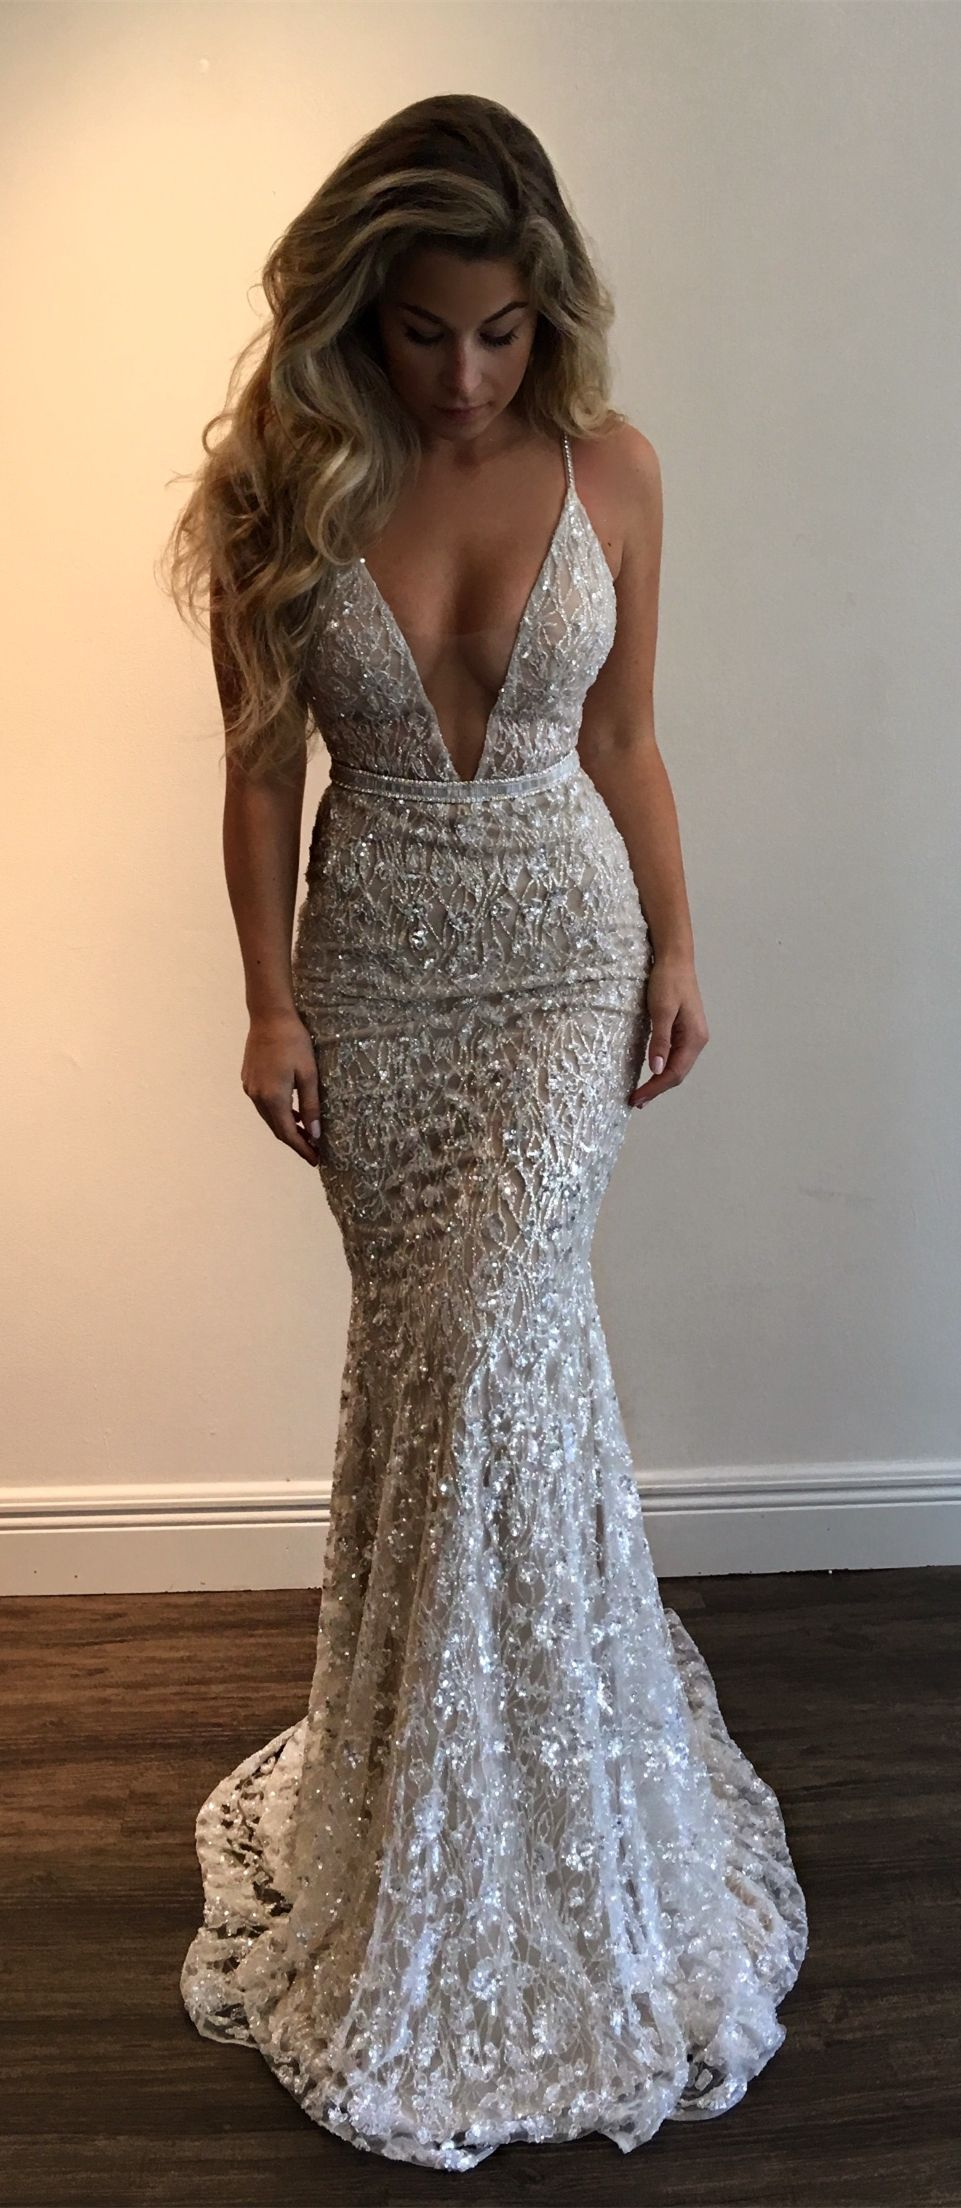 ed0e540c5a4 Mermaid Deep V-Neck Sweep Train Silver Lace Prom Dress with Sequins ...